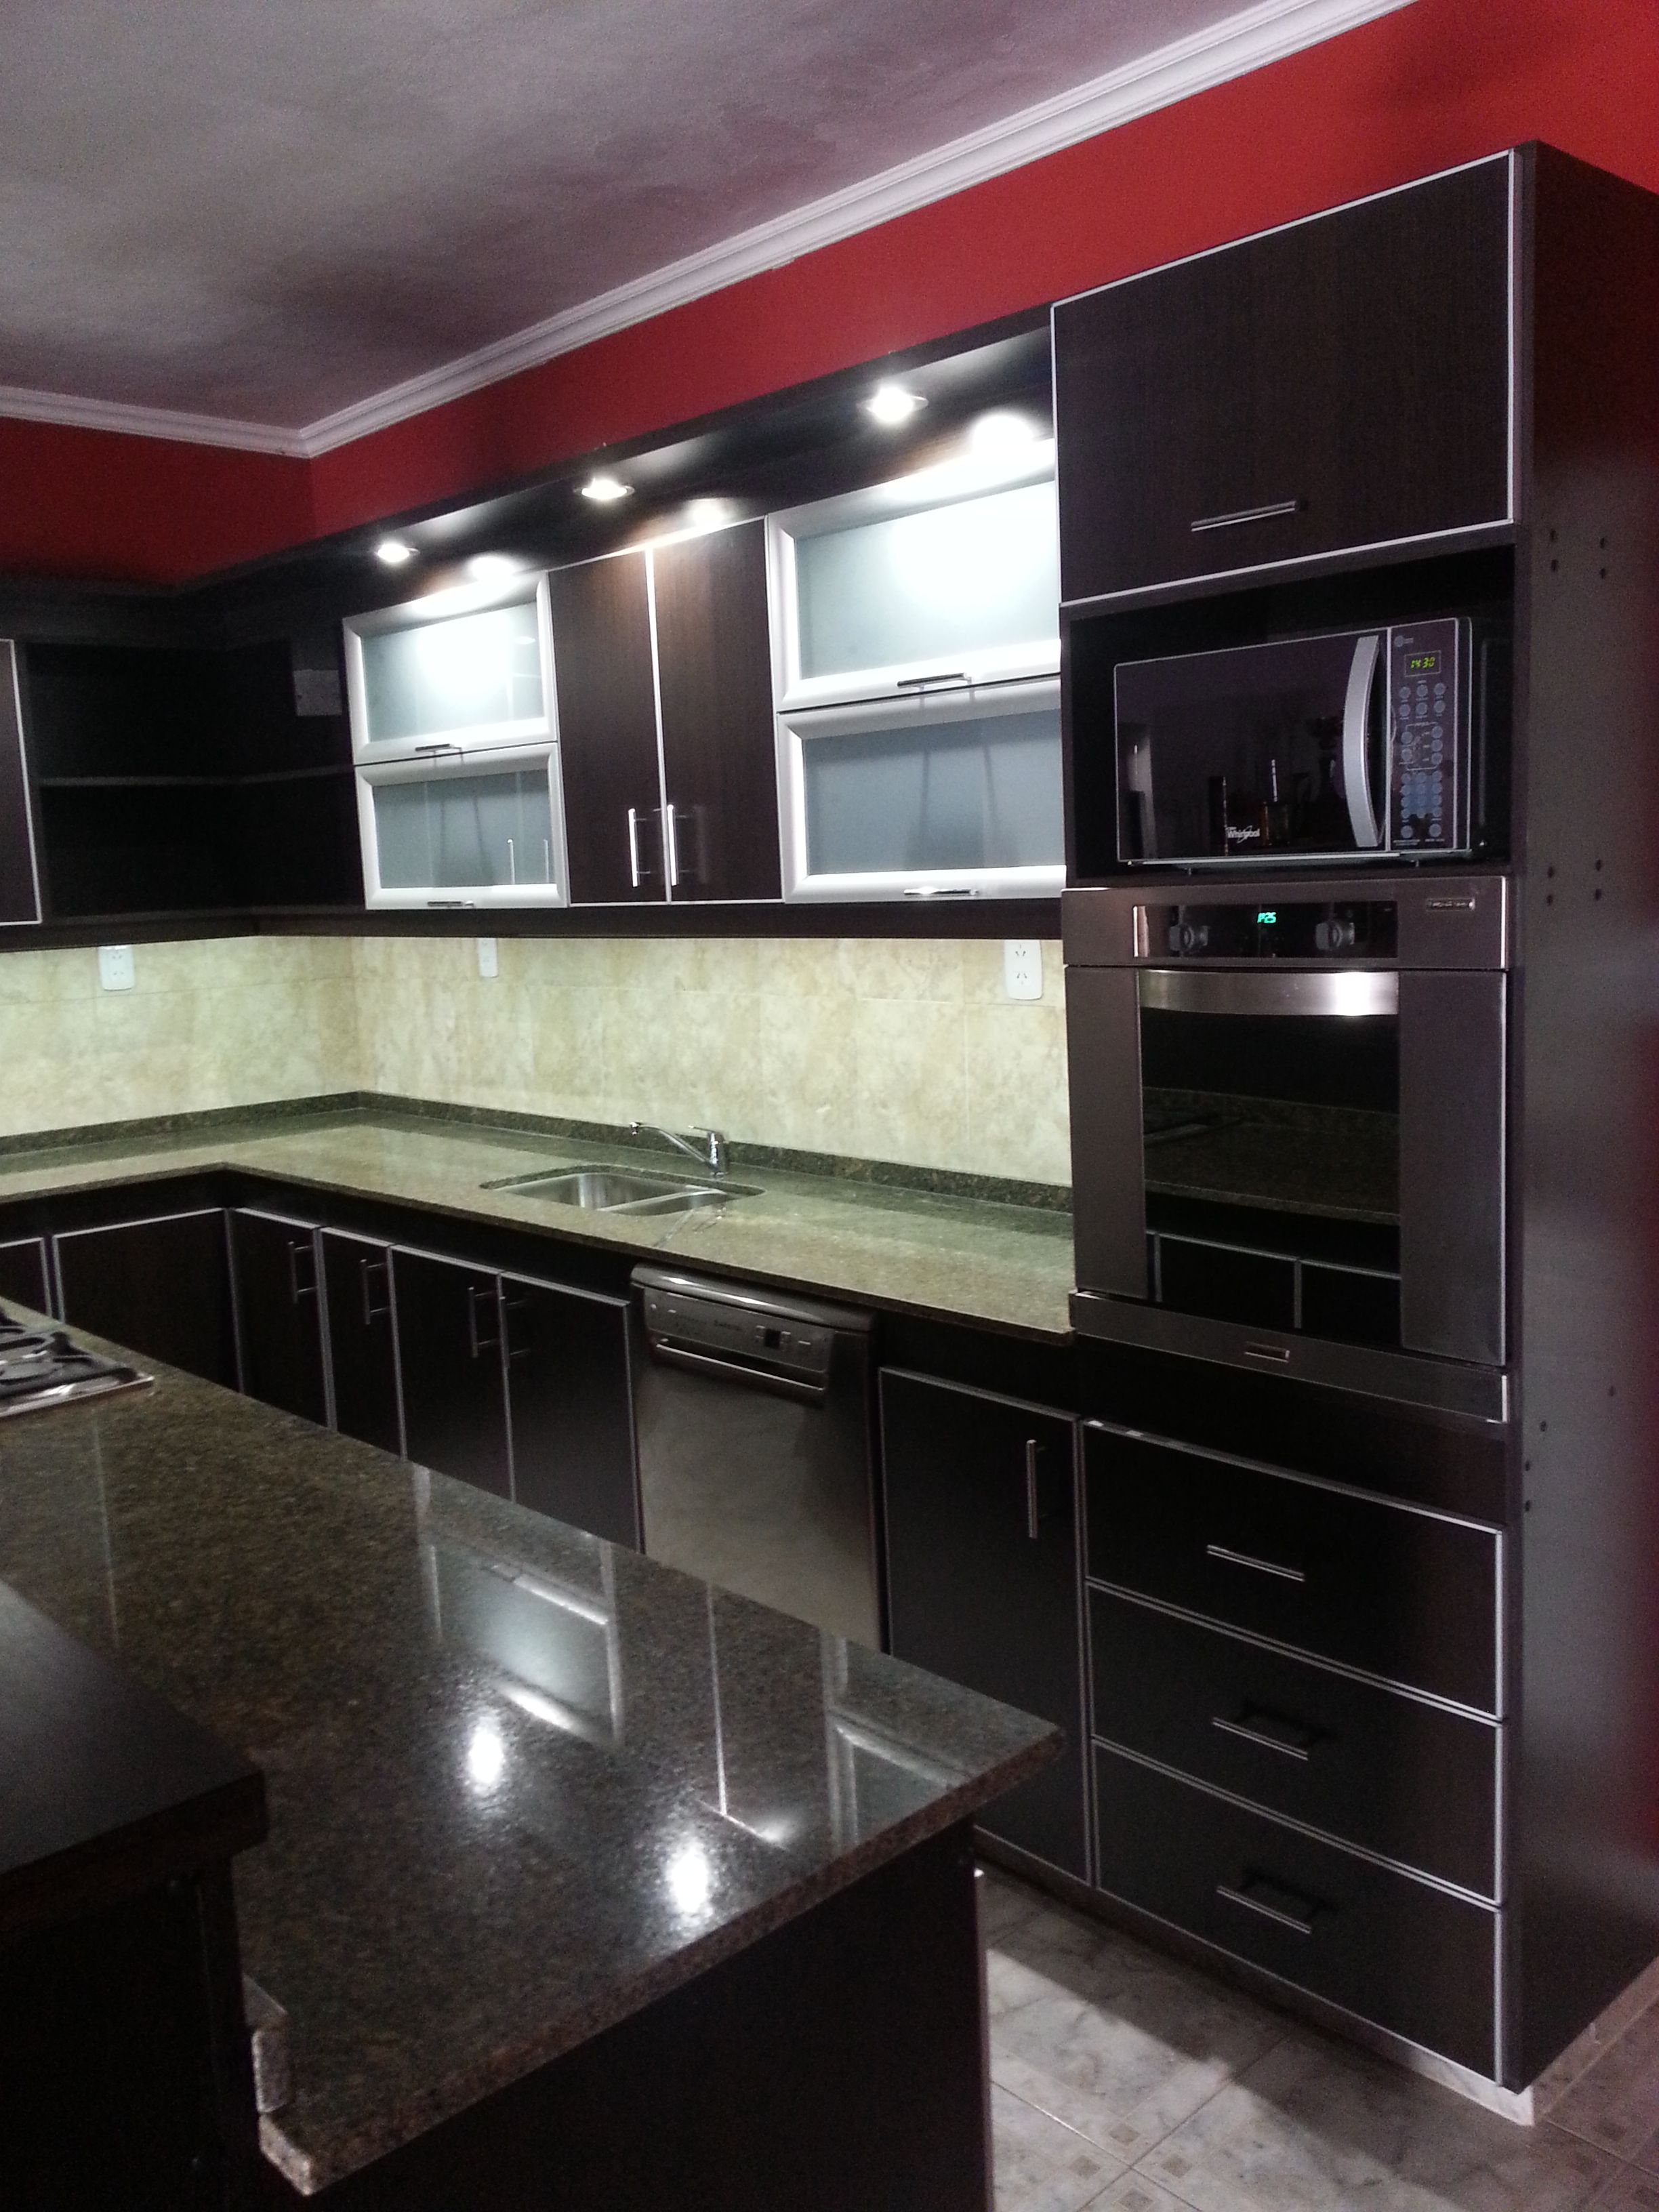 Muebles realizados en mdf color roble moro con for Hornos para cocinas pequenas